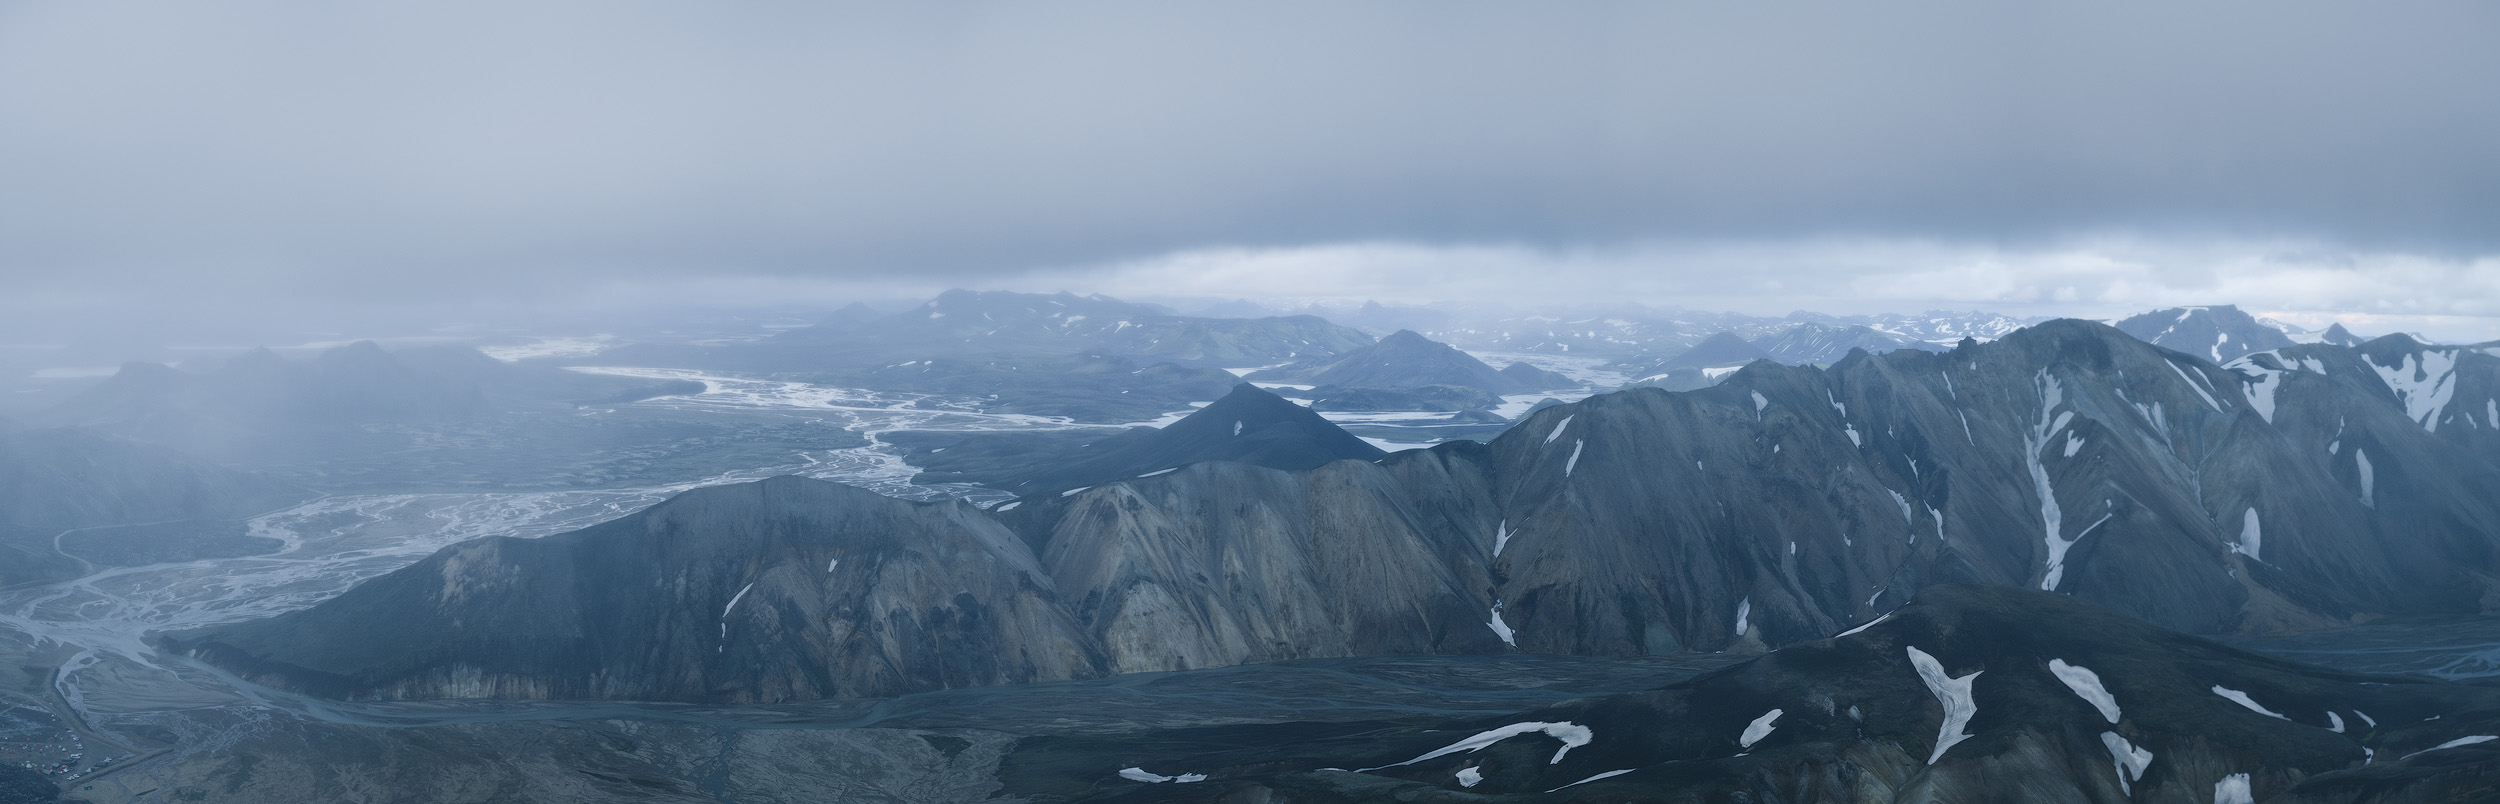 The view from on top of Blajnukur, overlooking the Landmannalaugar valley as rain and mist set in.